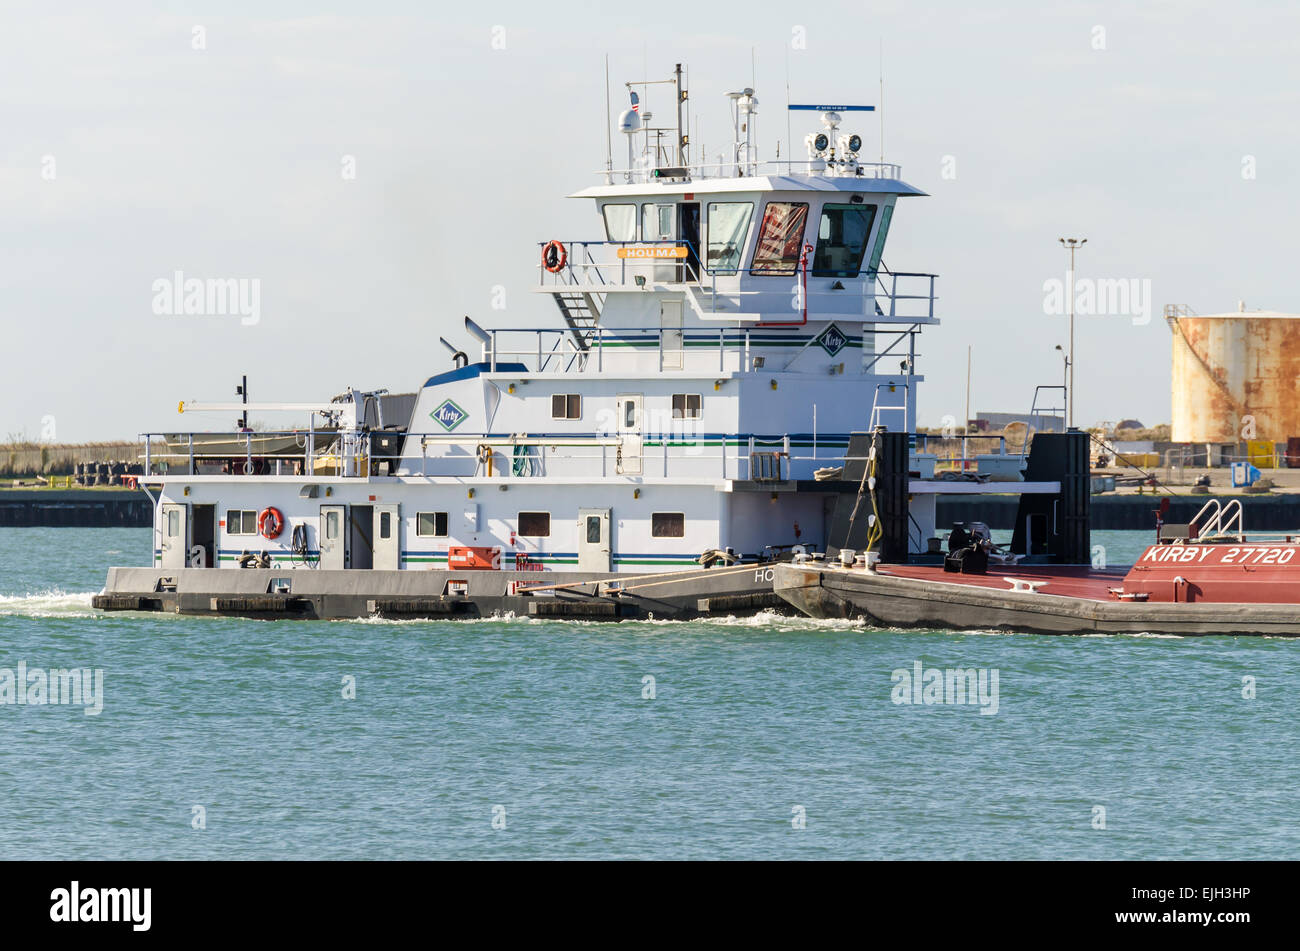 The Kirby tug Houma pushing Kirby barge 27720 in the Corpus Christi ship channel. - Stock Image